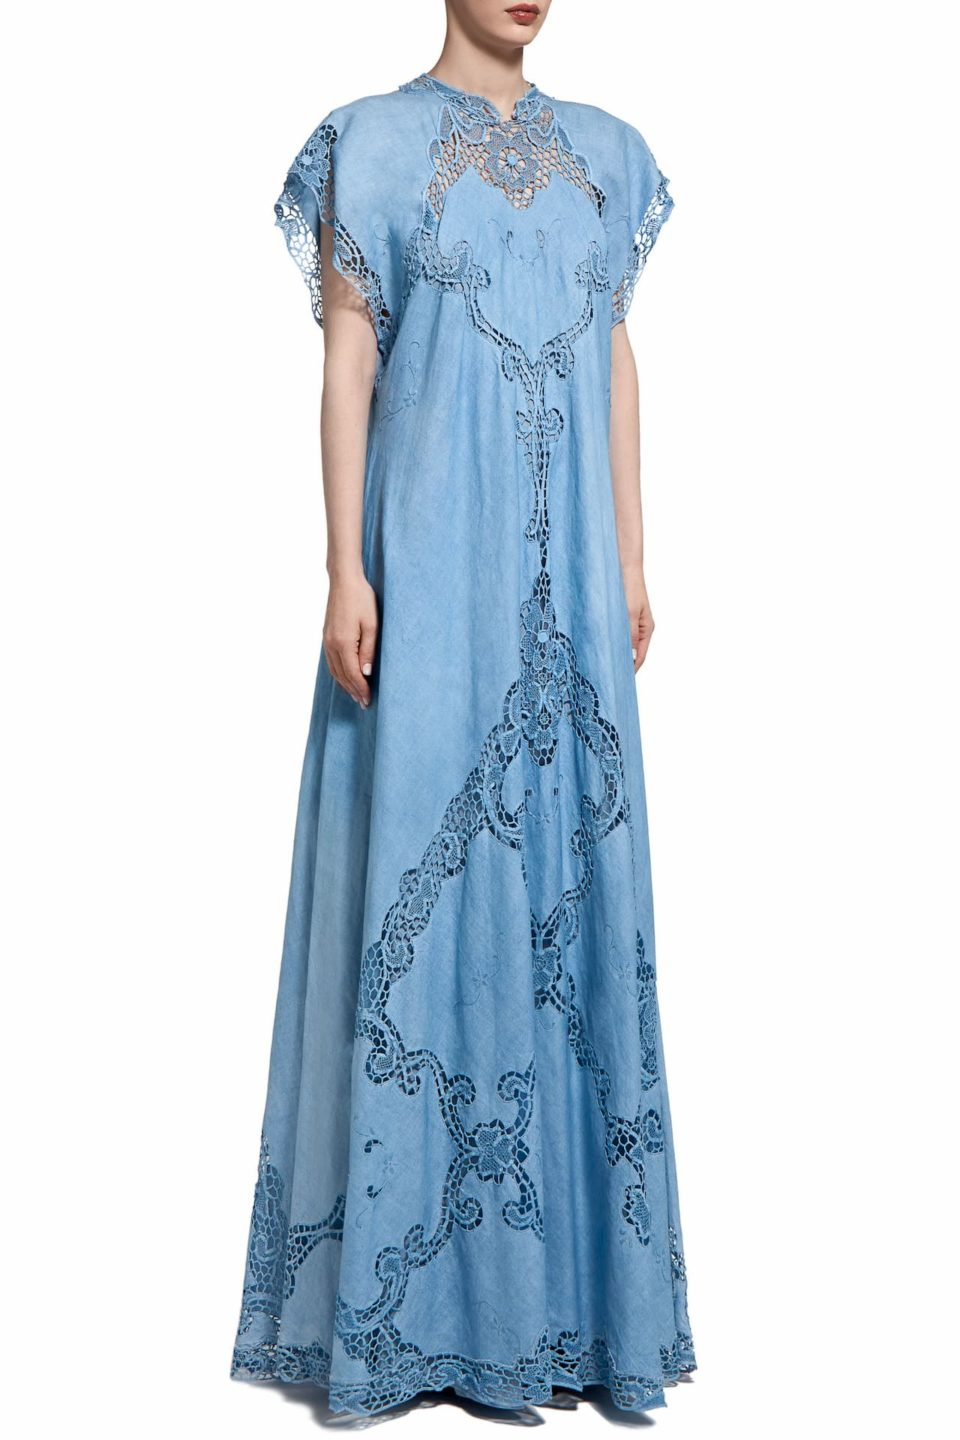 Alinna PR2014 Blue Linen Caftan Dress with Illusion Neckline & Greek Traditional Reticella Lace Detail